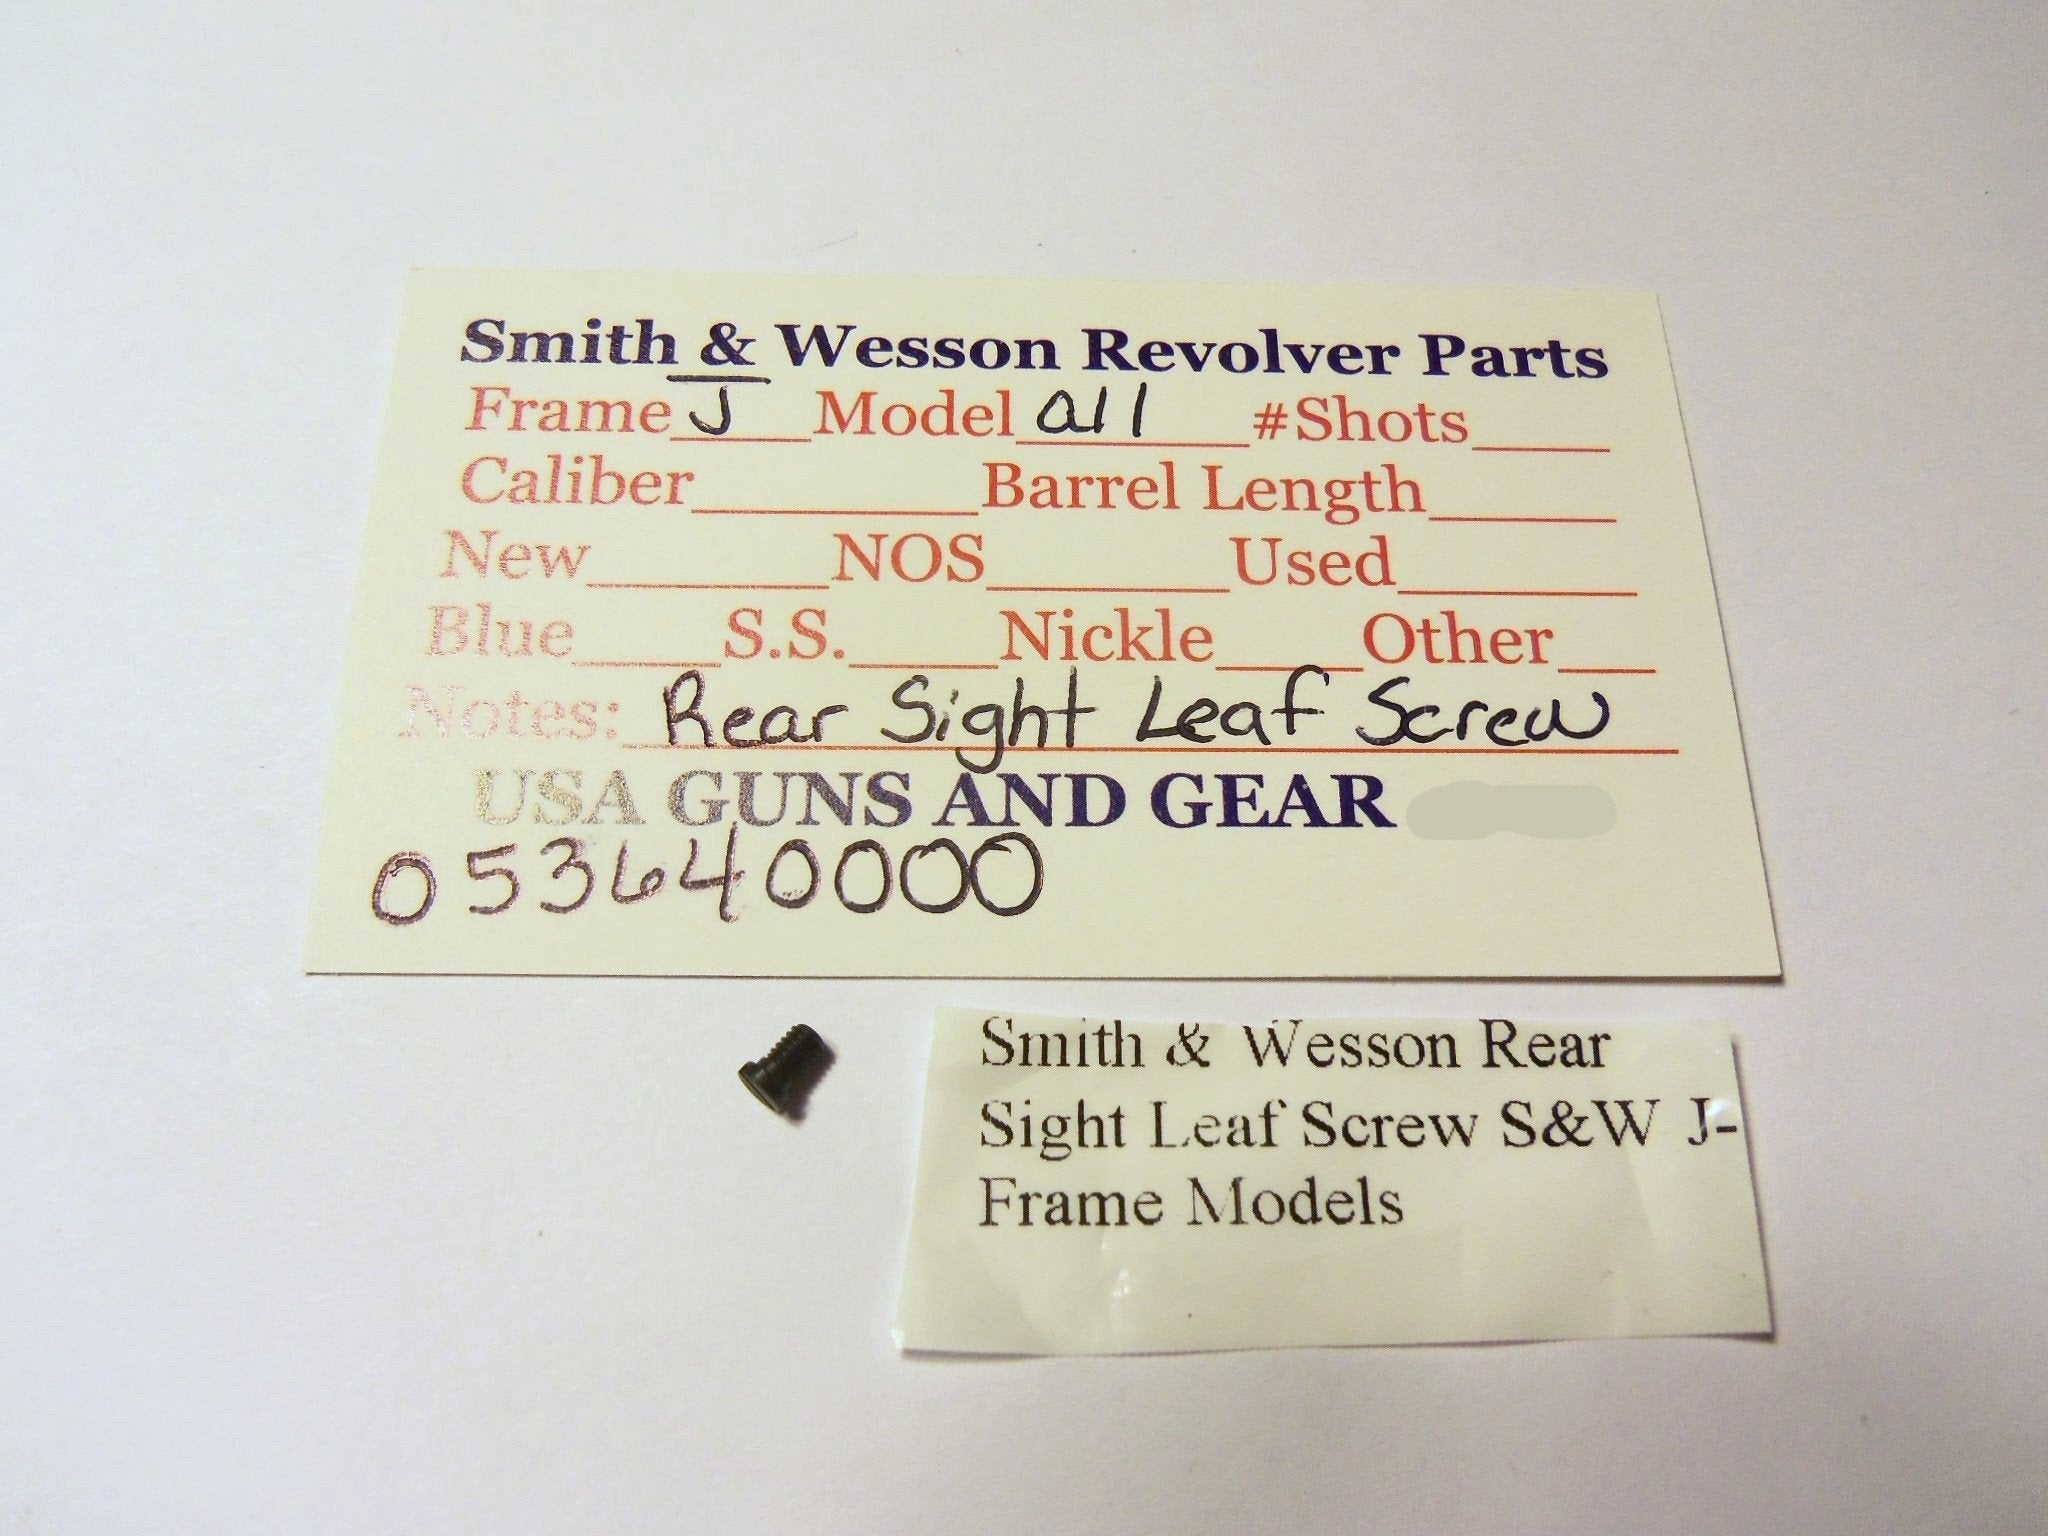 Https Daily Smith And Wesson Model 29 Parts Diagram On Mosin Nagant 100 2120v1518803838